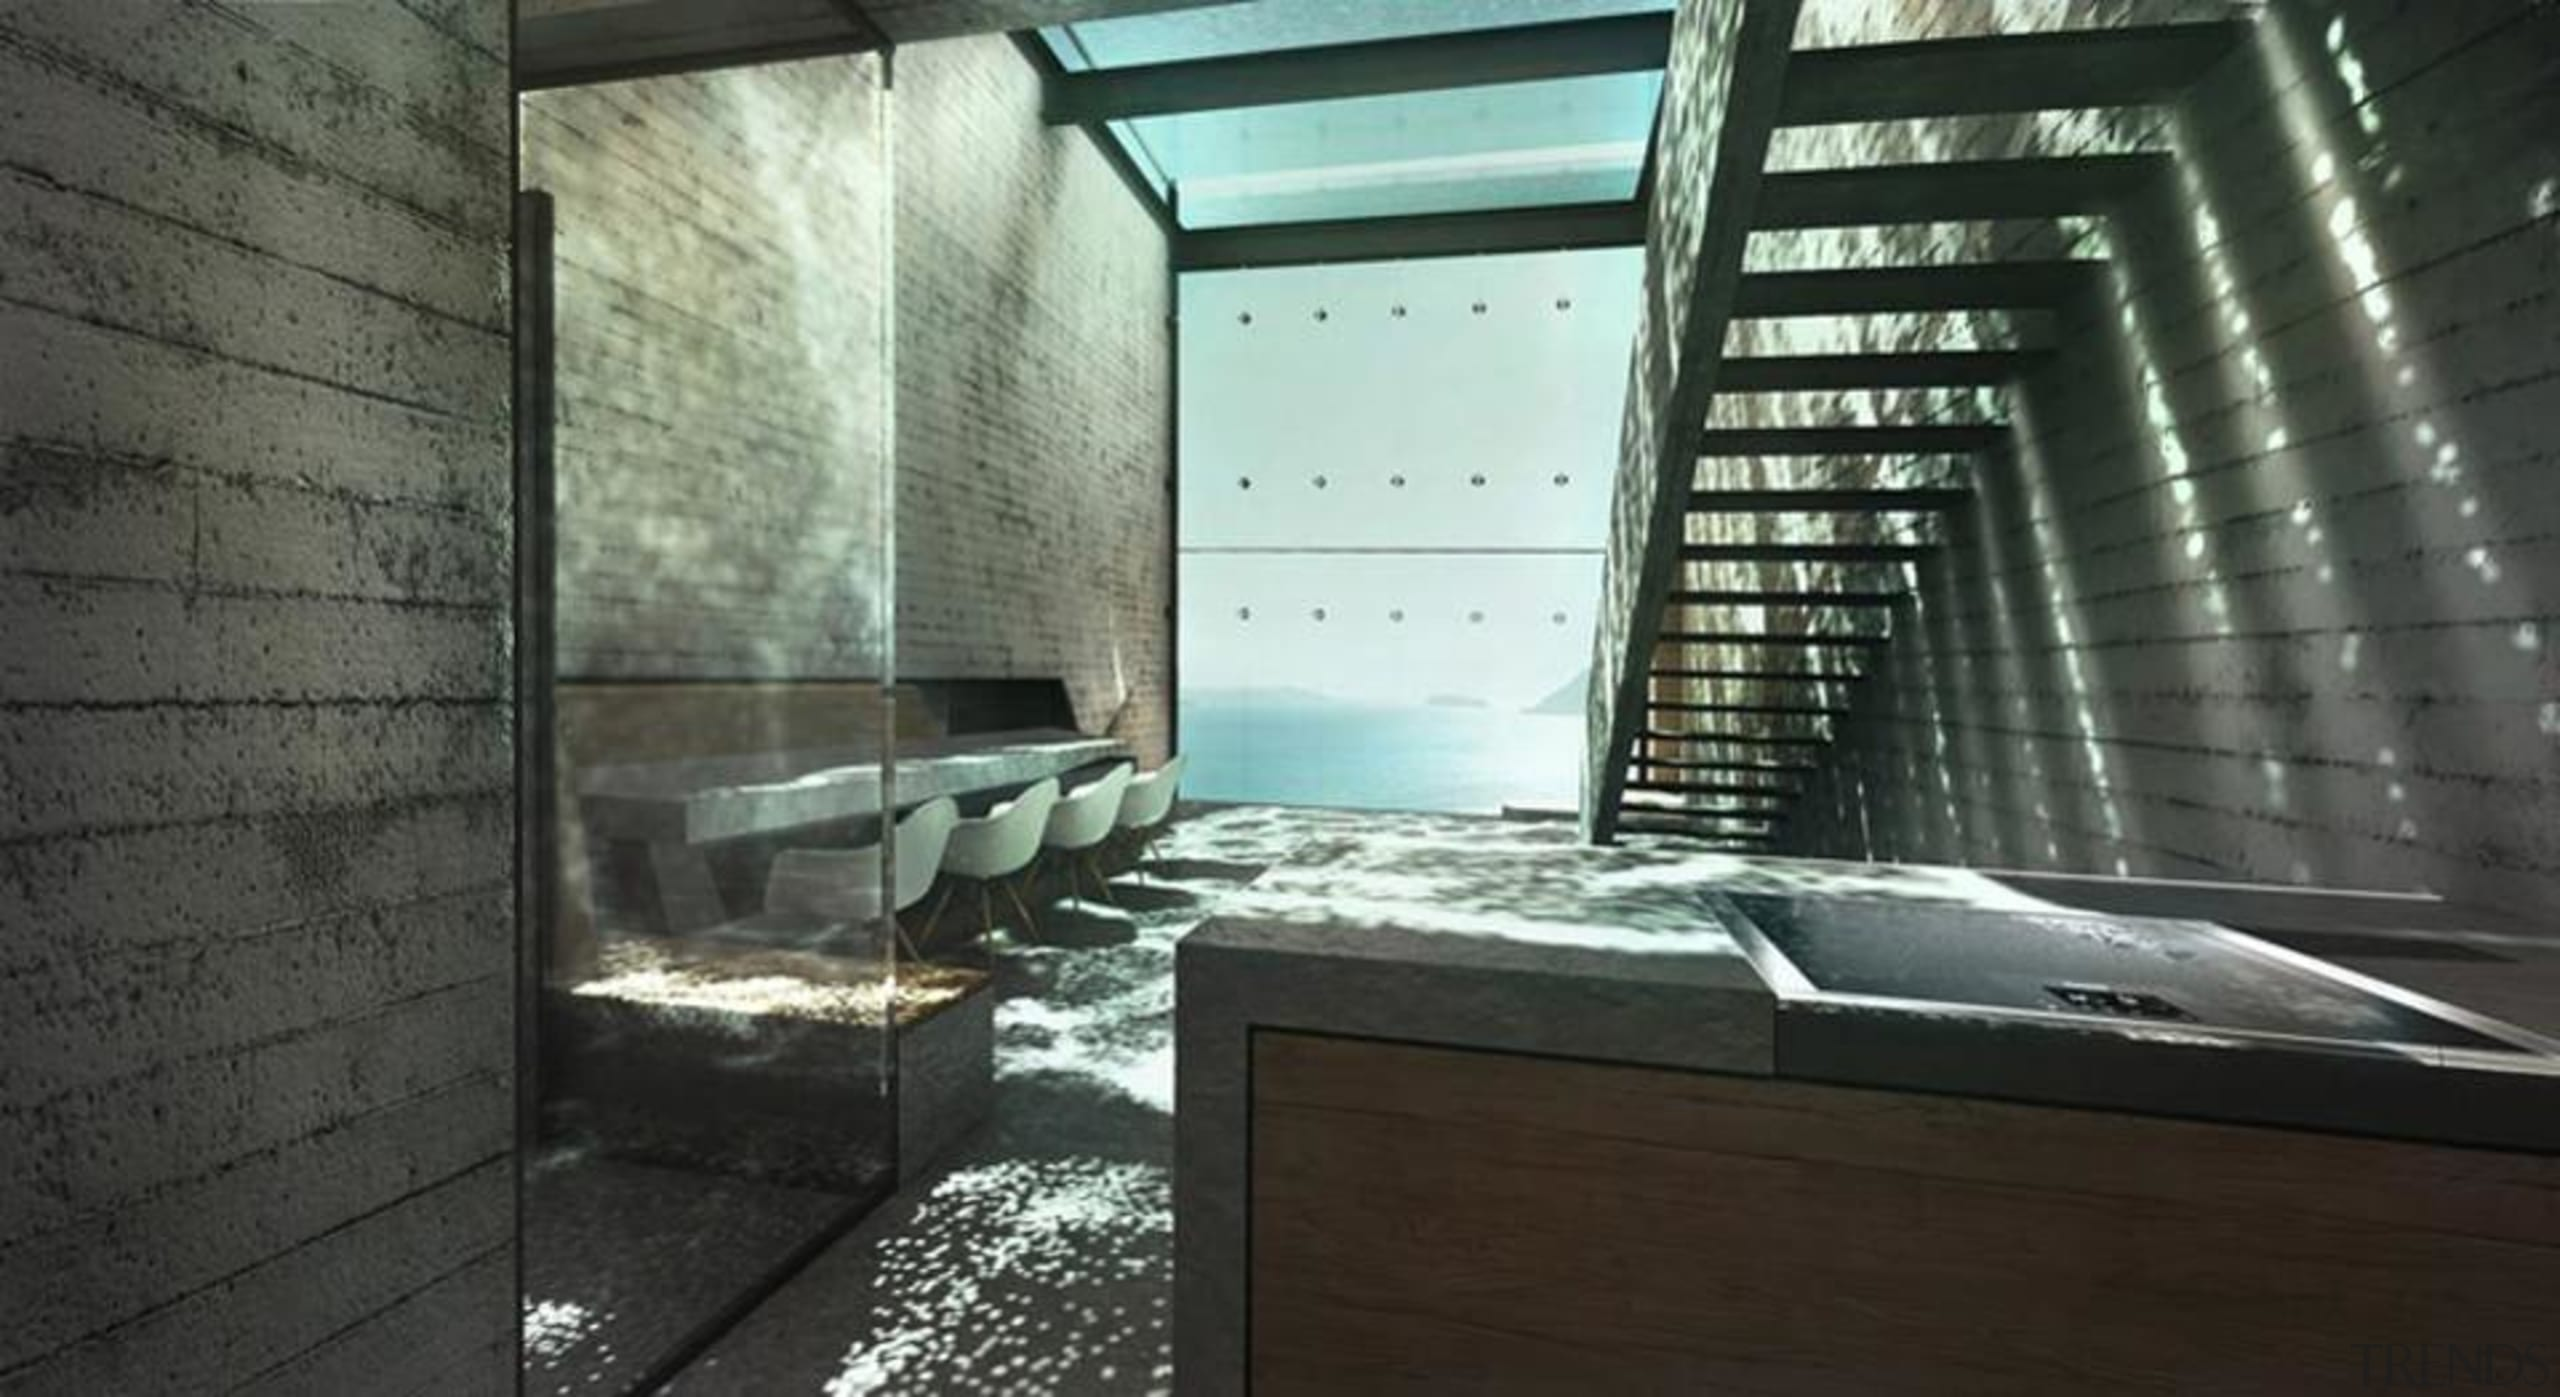 Casa Brutale: Images from LAAV architecture, daylighting, glass, interior design, black